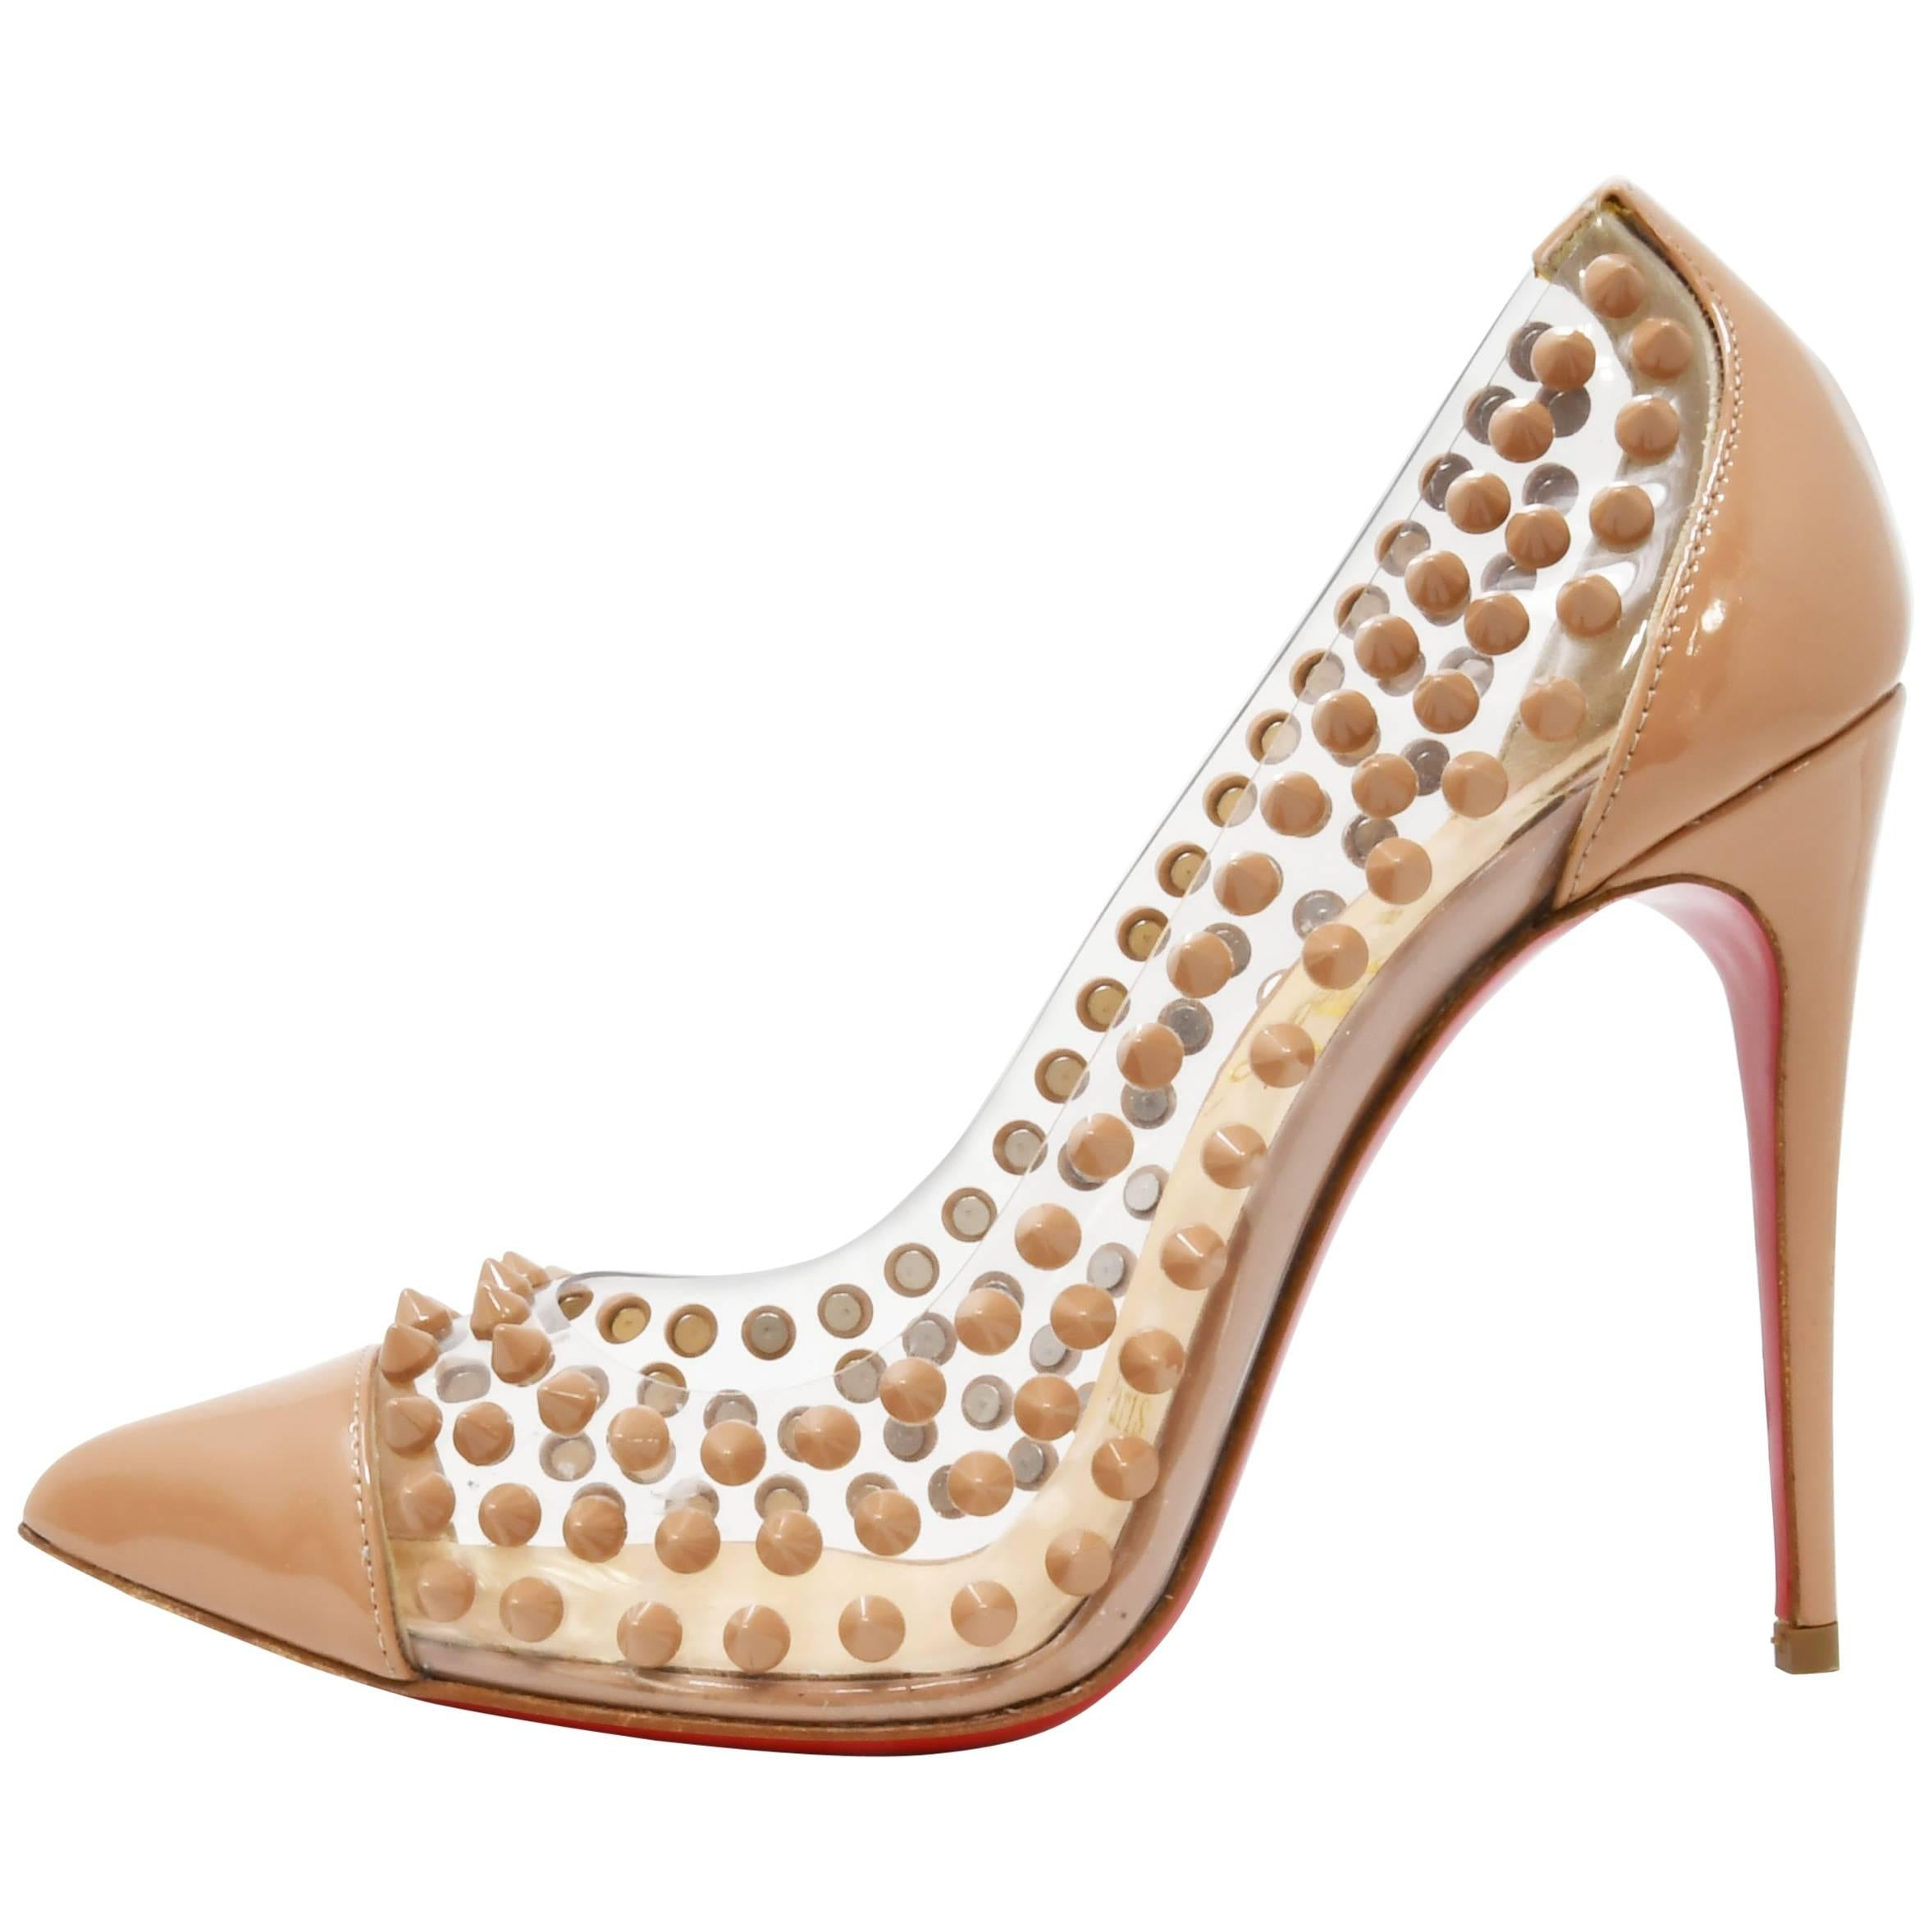 Leather Louboutin Nude Toe Christian Me' Size Pumps 'spike Patent Pointed Pvc 36 mN8ynwO0vP